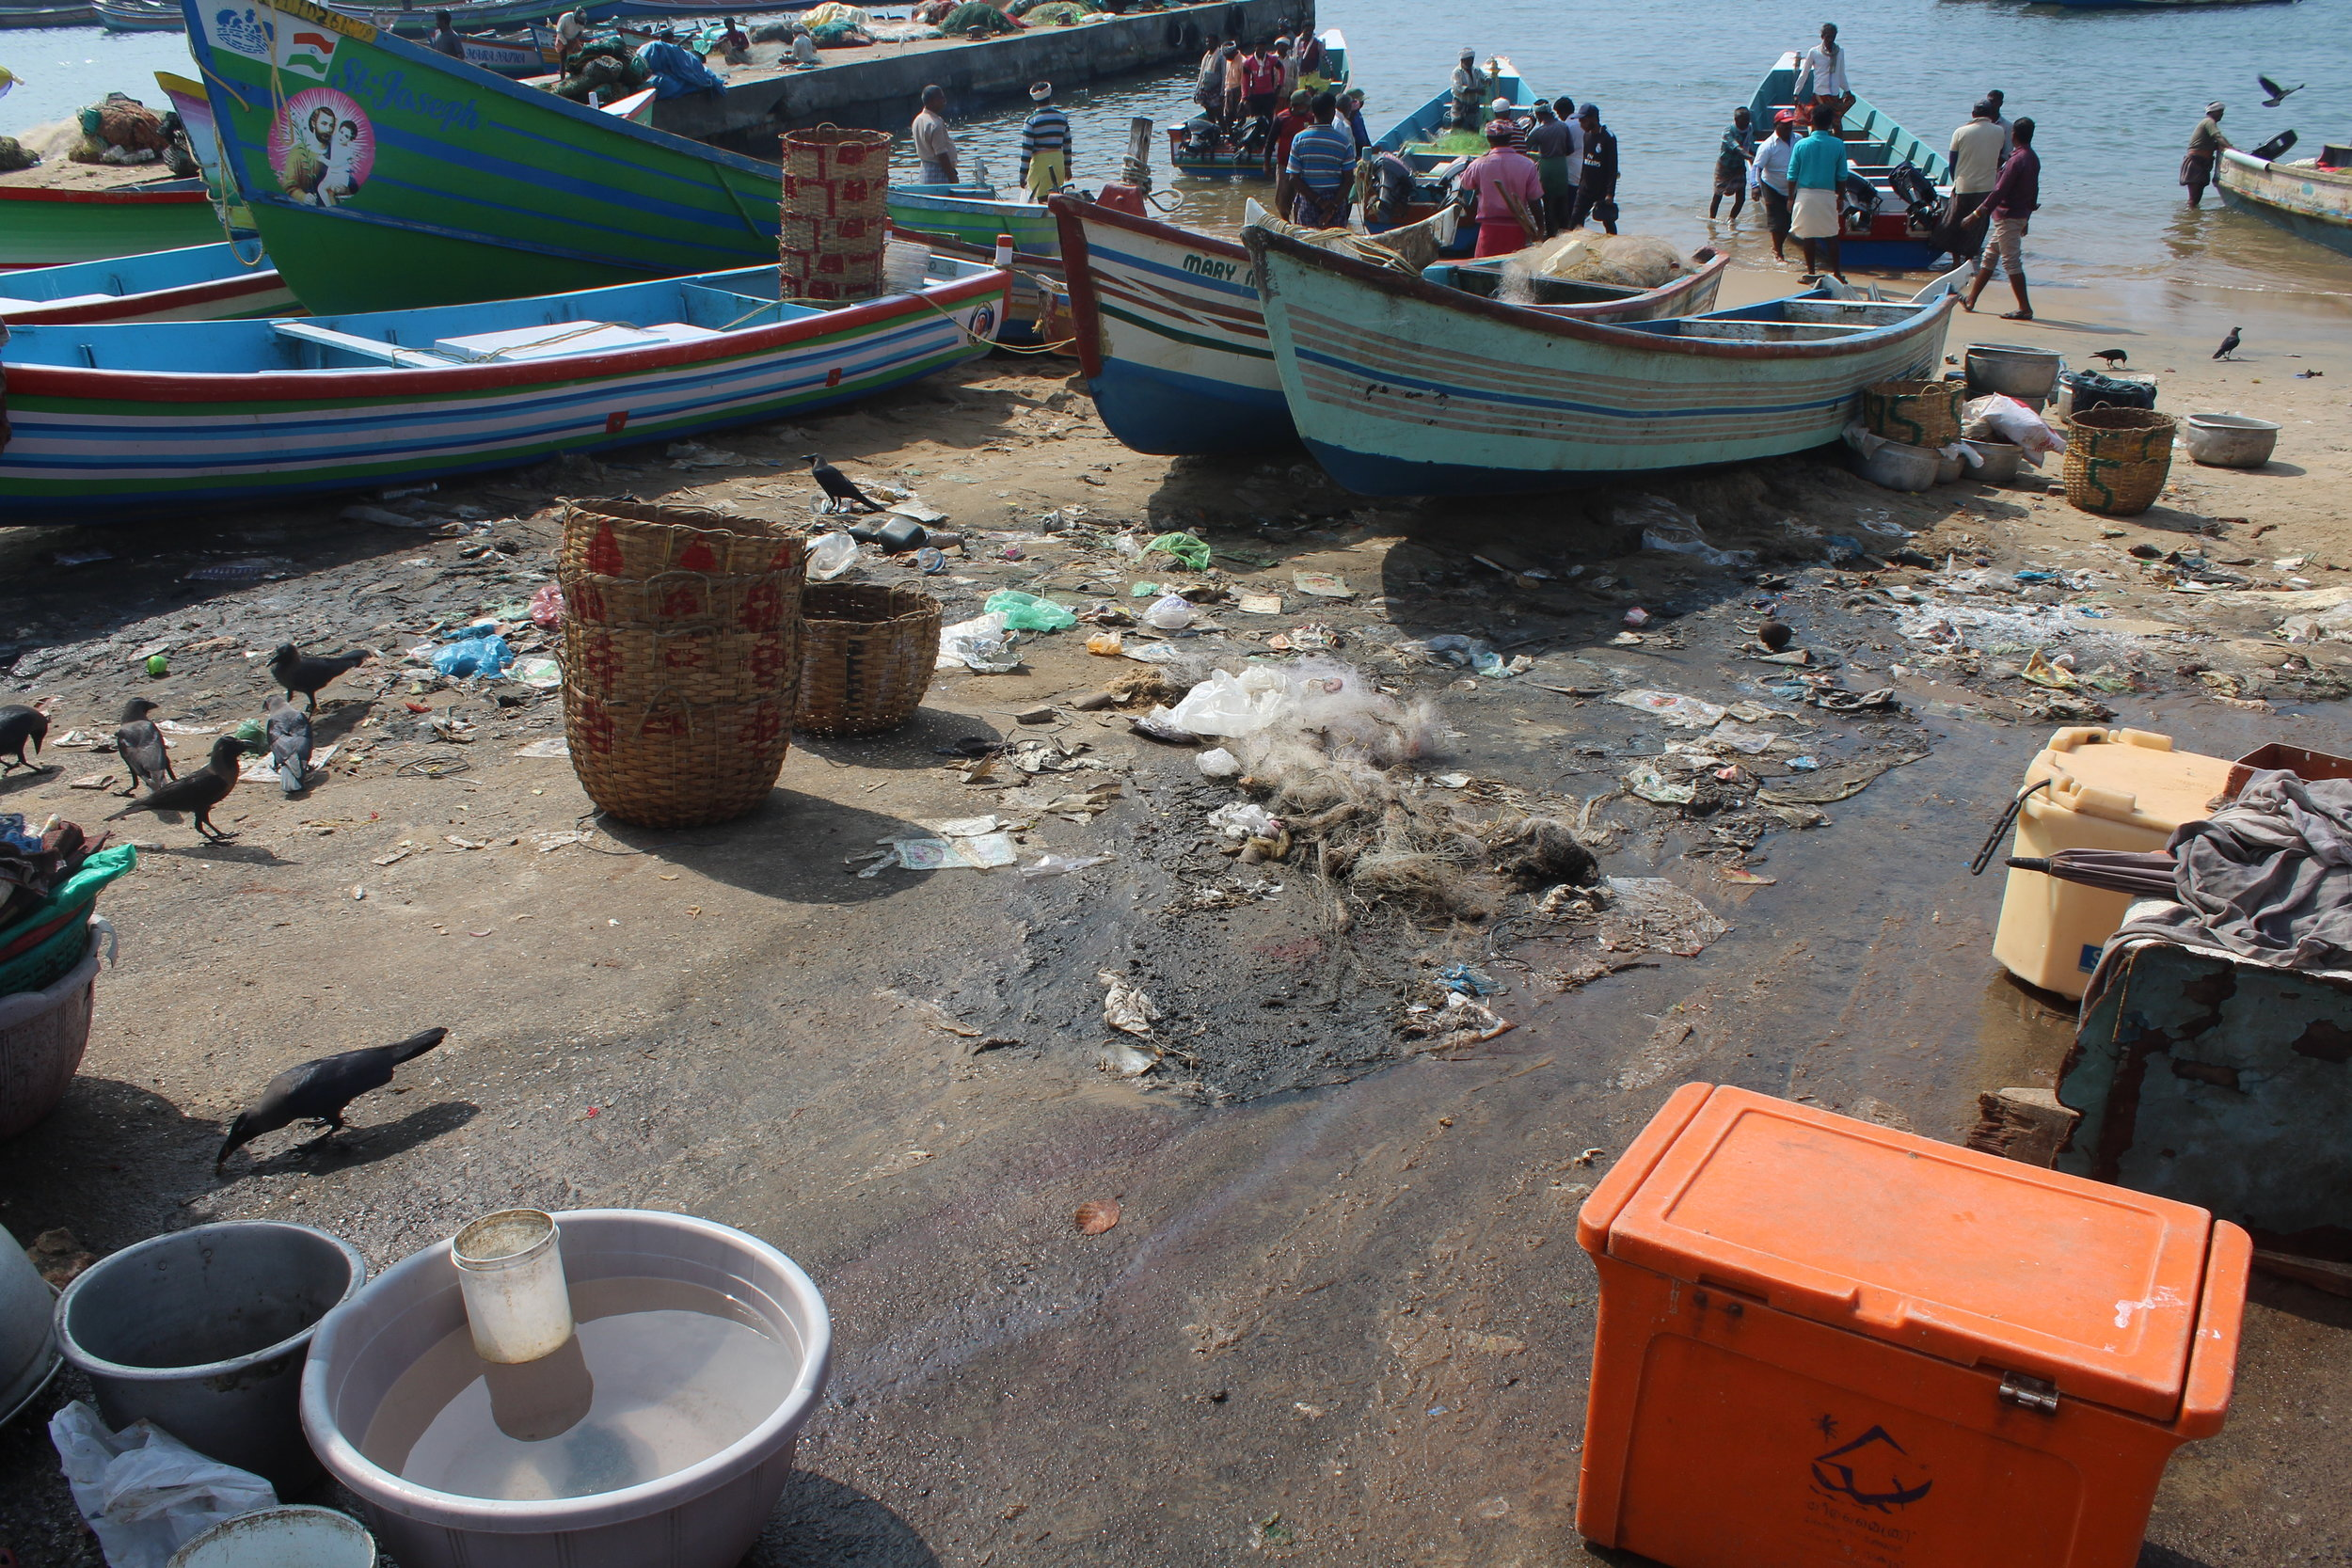 The extent of plastic pollution and waste in Vizhinjam Harbour is enormous. With no bins, everything is discarded into the environment.